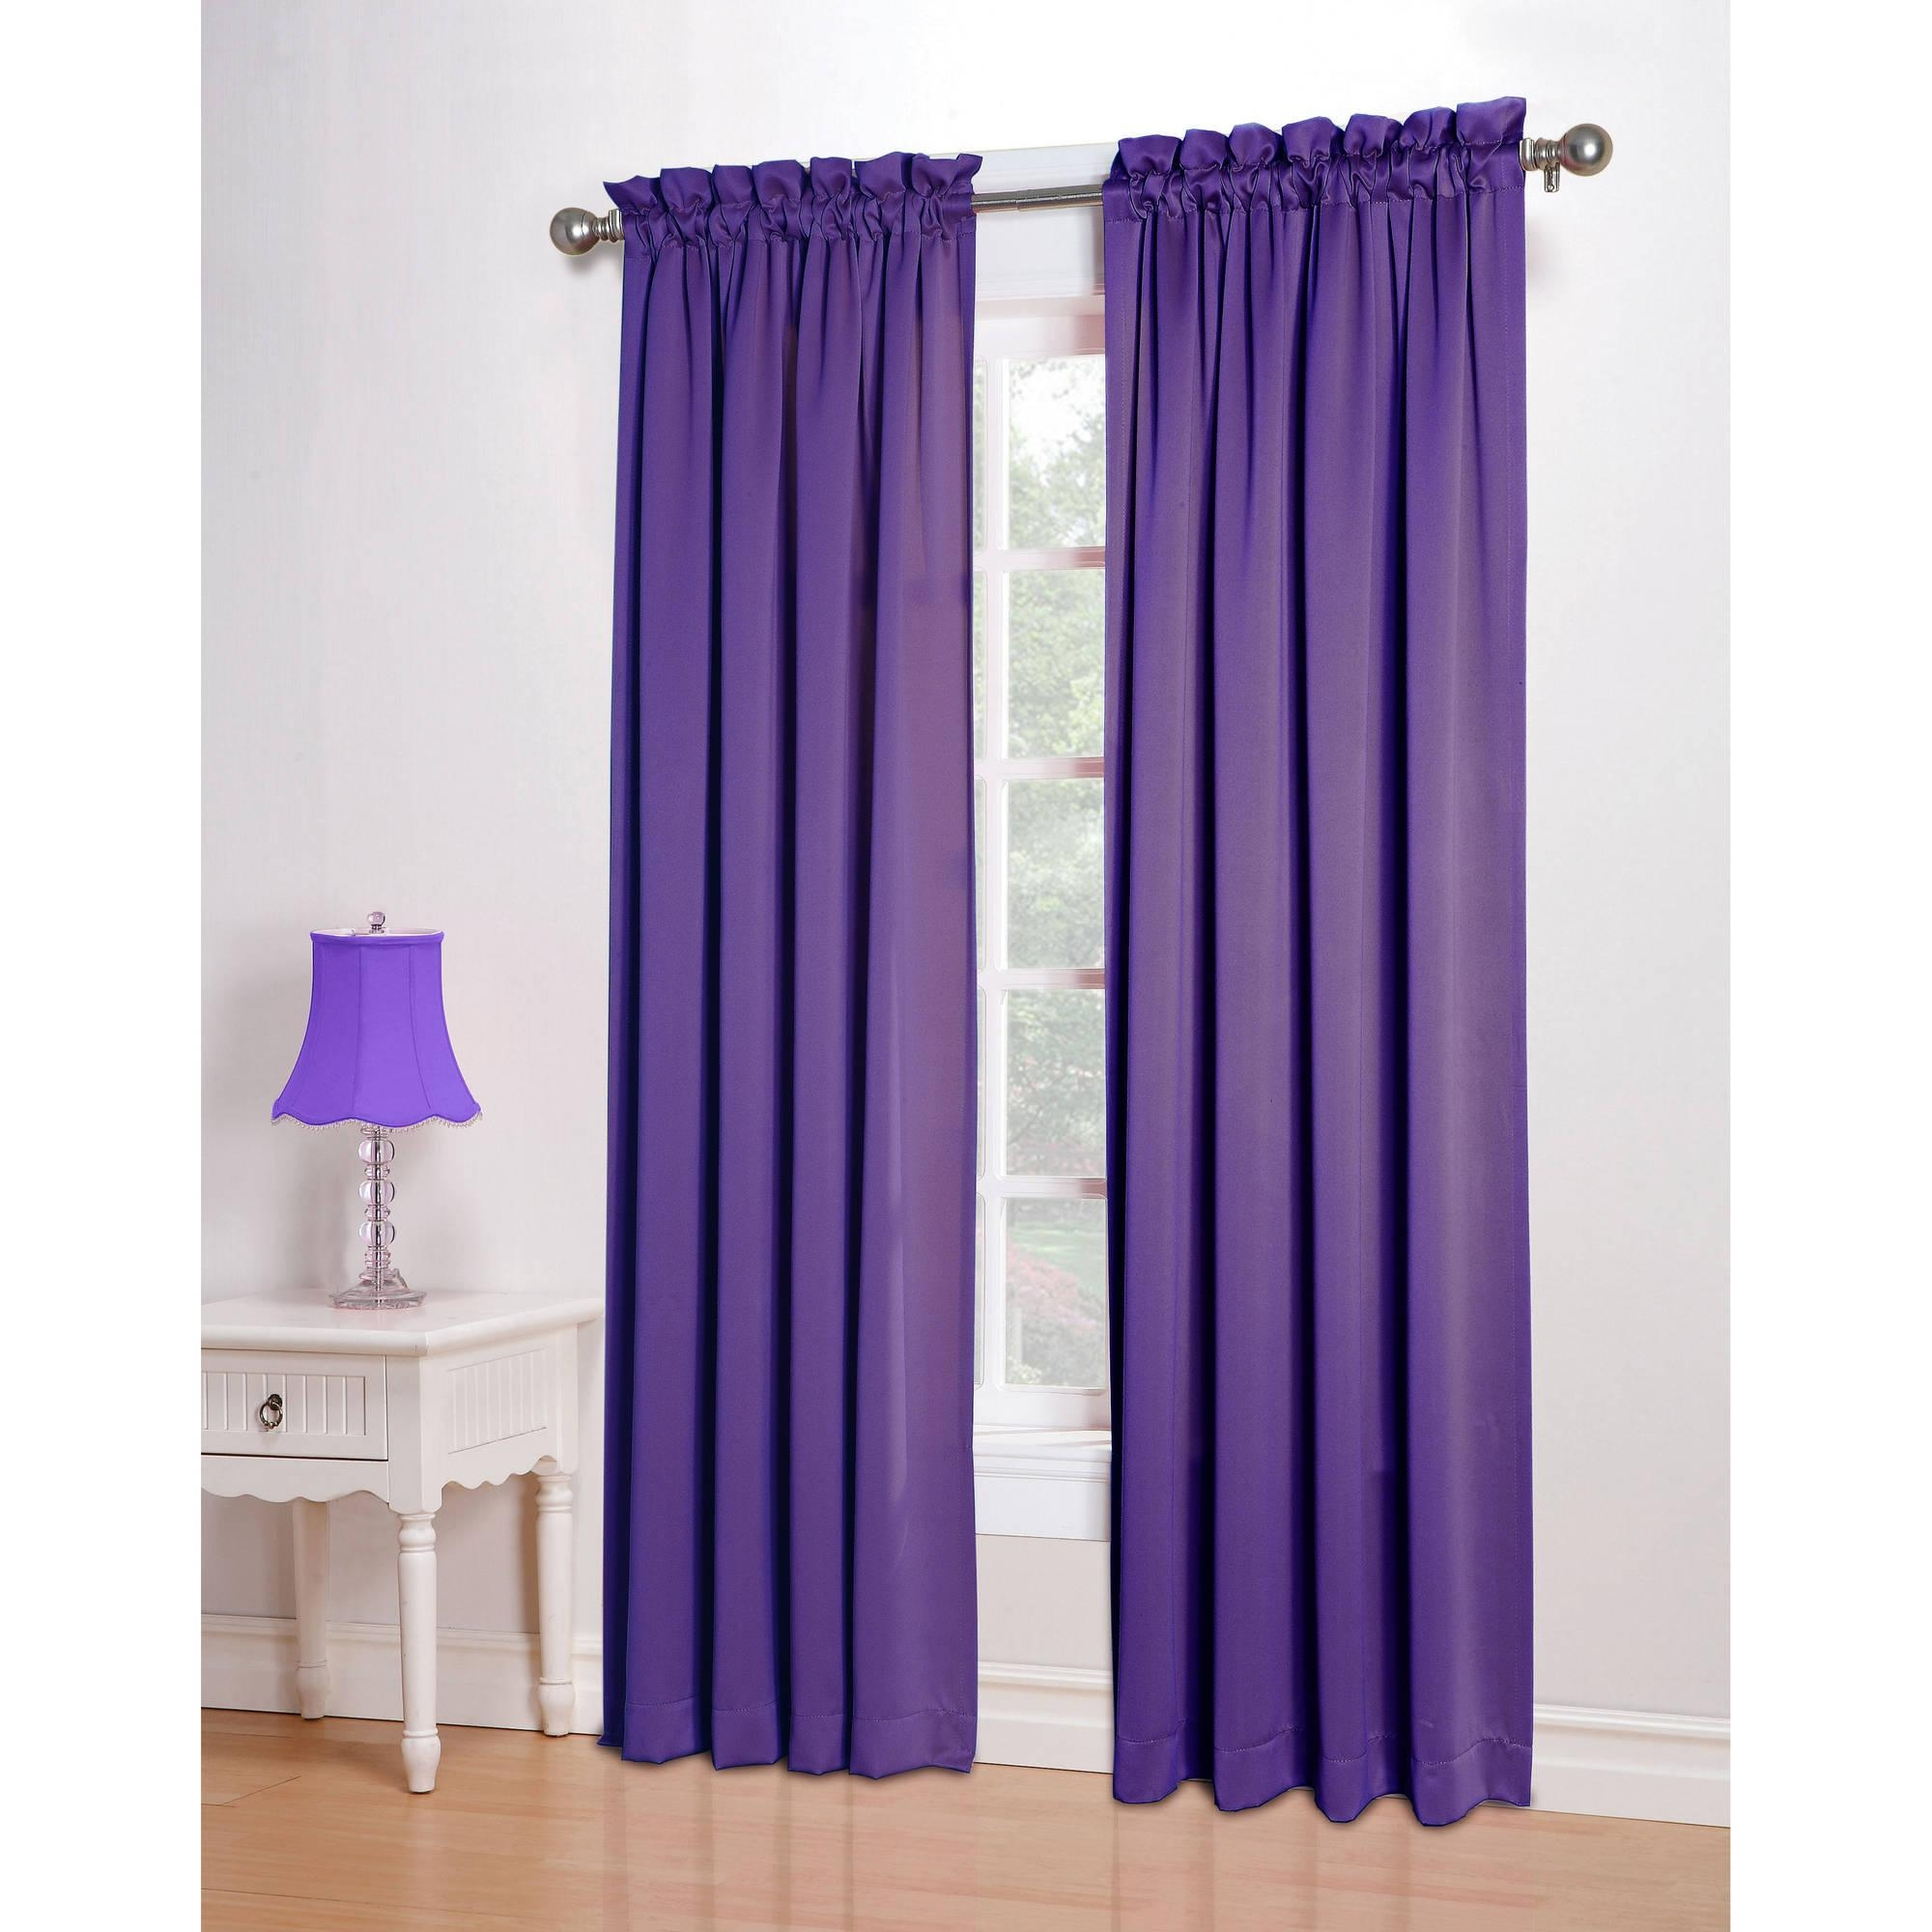 Purple Curtains For Girls Bedroom Pierpointsprings Pertaining To Purple Curtains For Kids Room (Image 20 of 25)